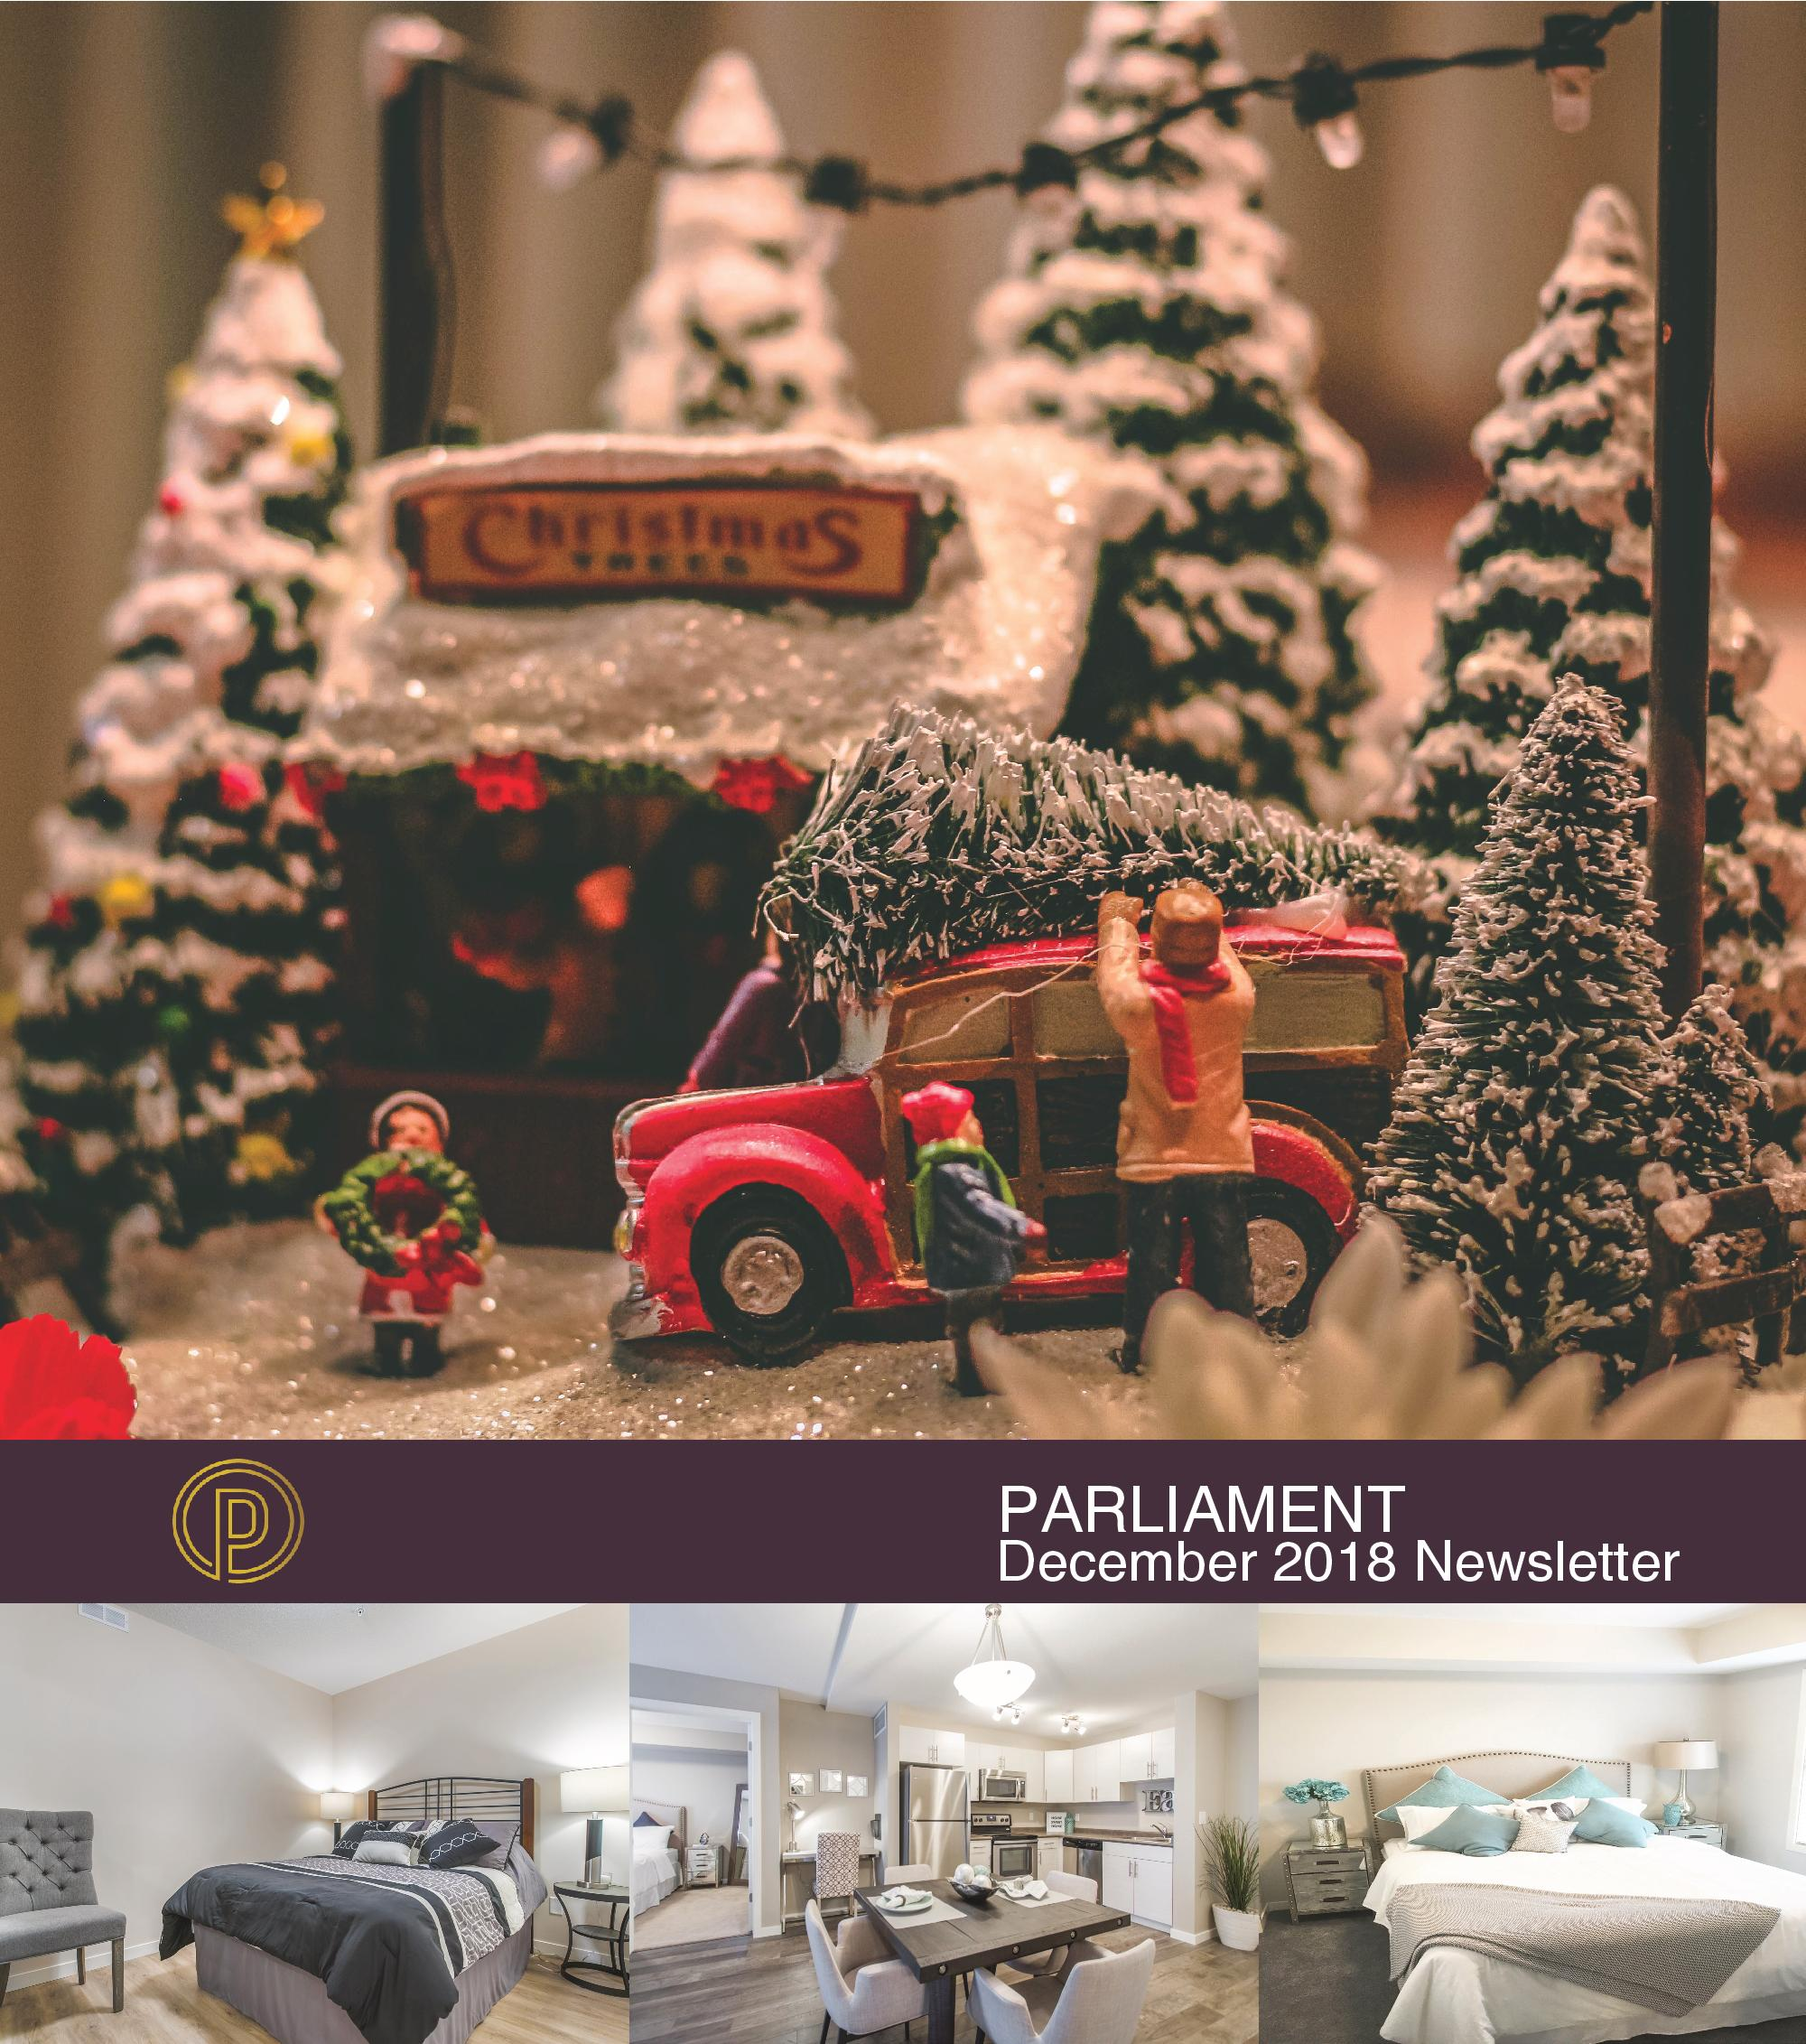 November 20th December Newsletter Parliament-page-001.jpg